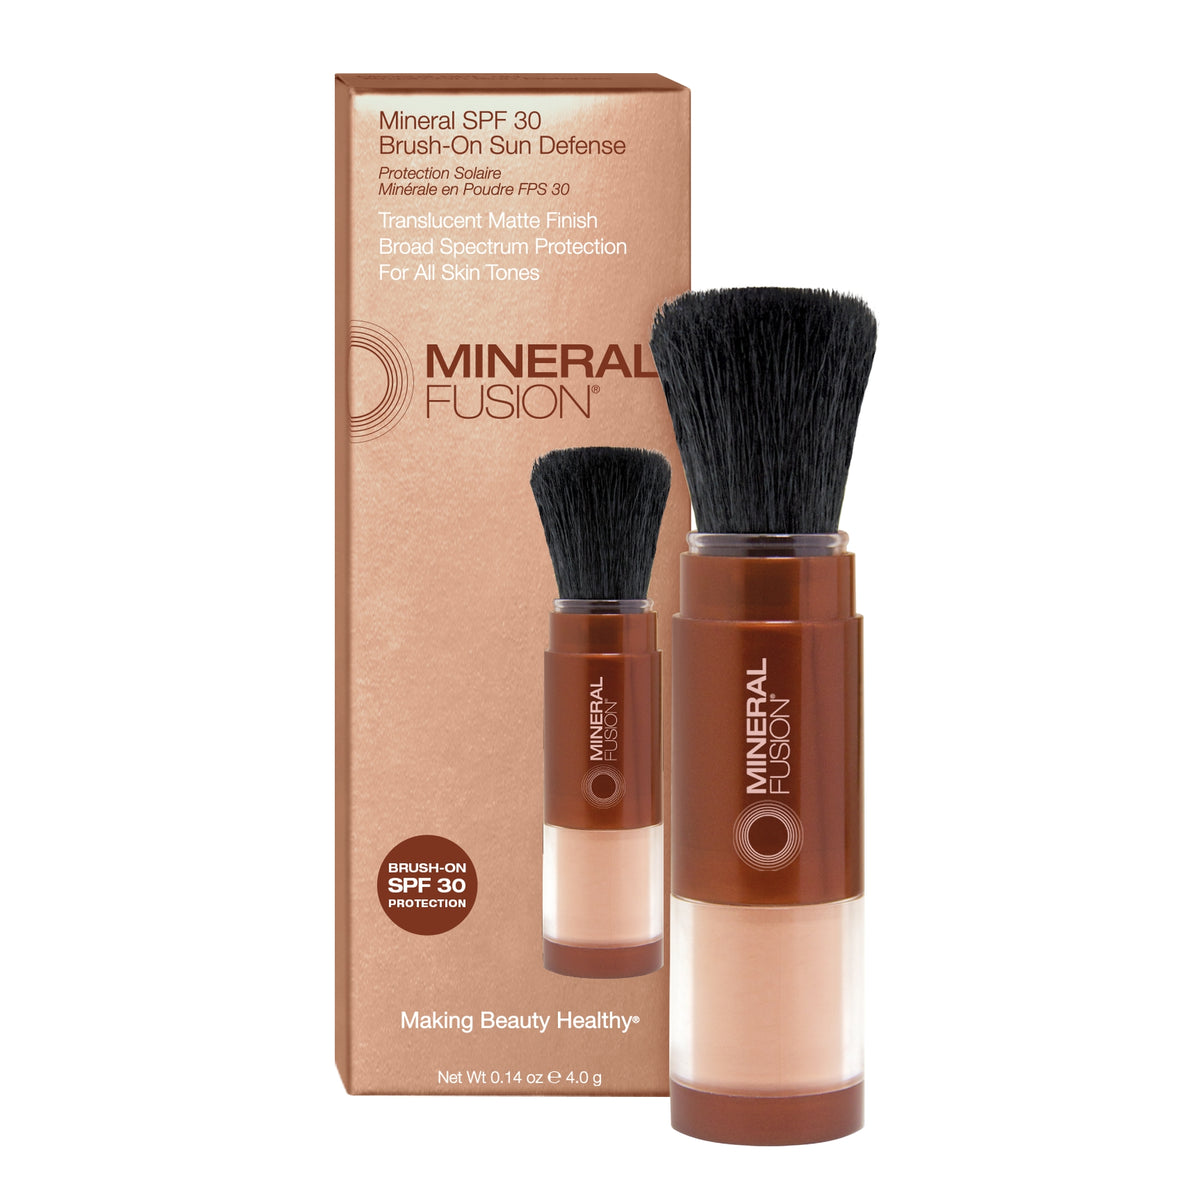 Mineral SPF 30 Brush-On Sun Defense - Mineral Fusion